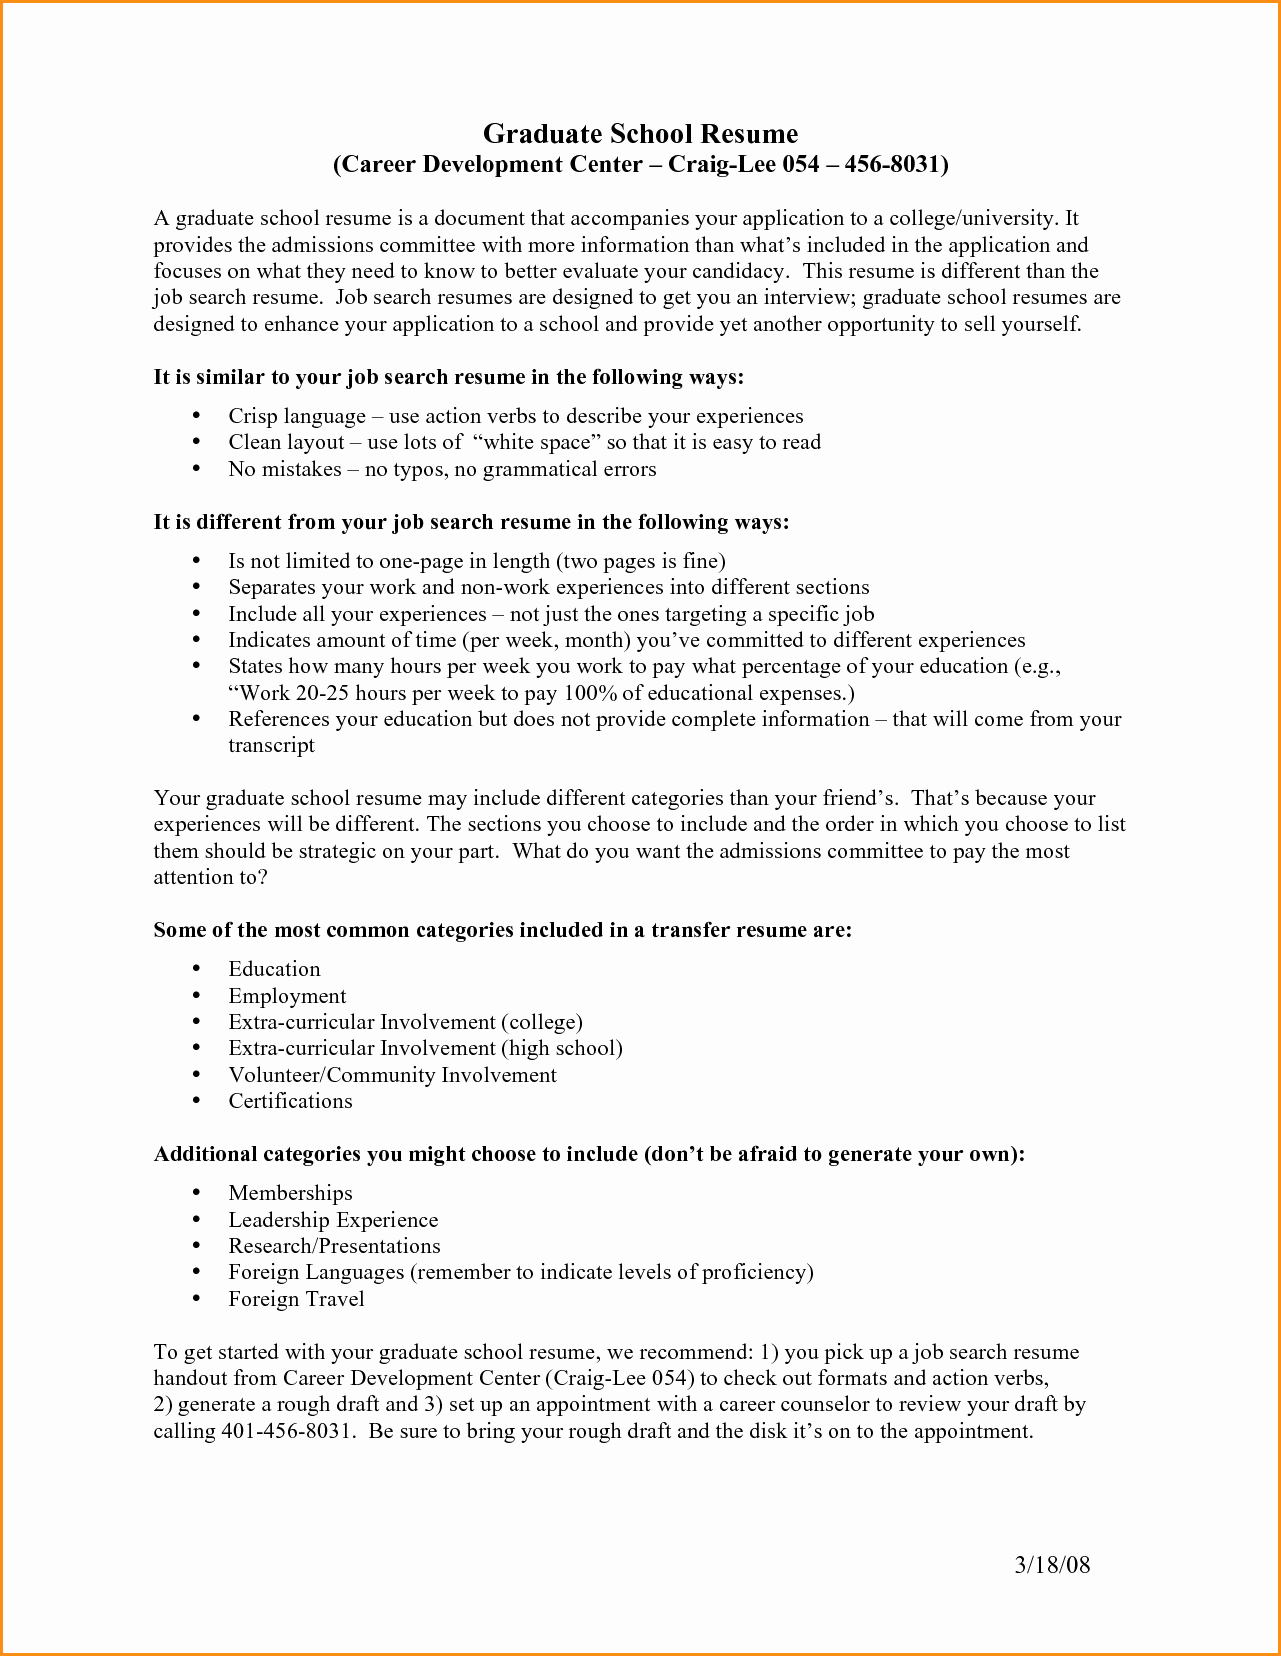 Graduate School Resume Template Luxury 14 Graduate School Resume Objective